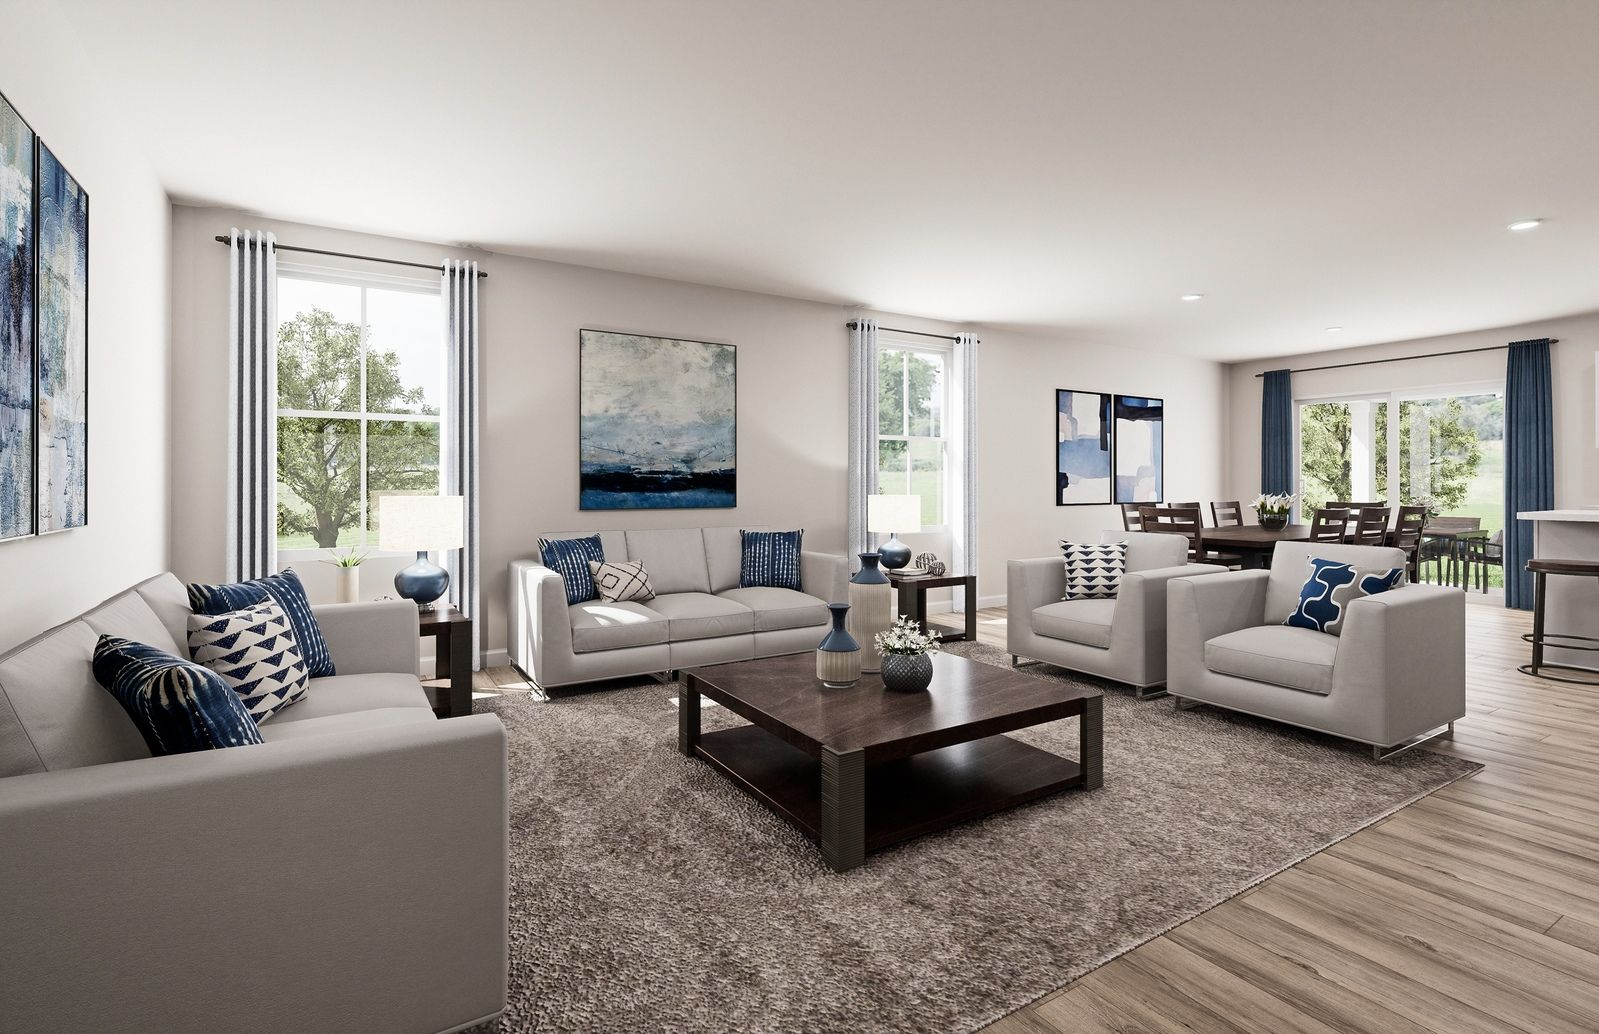 Living Area featured in the Eden Cay By Ryan Homes in Sussex County, NJ